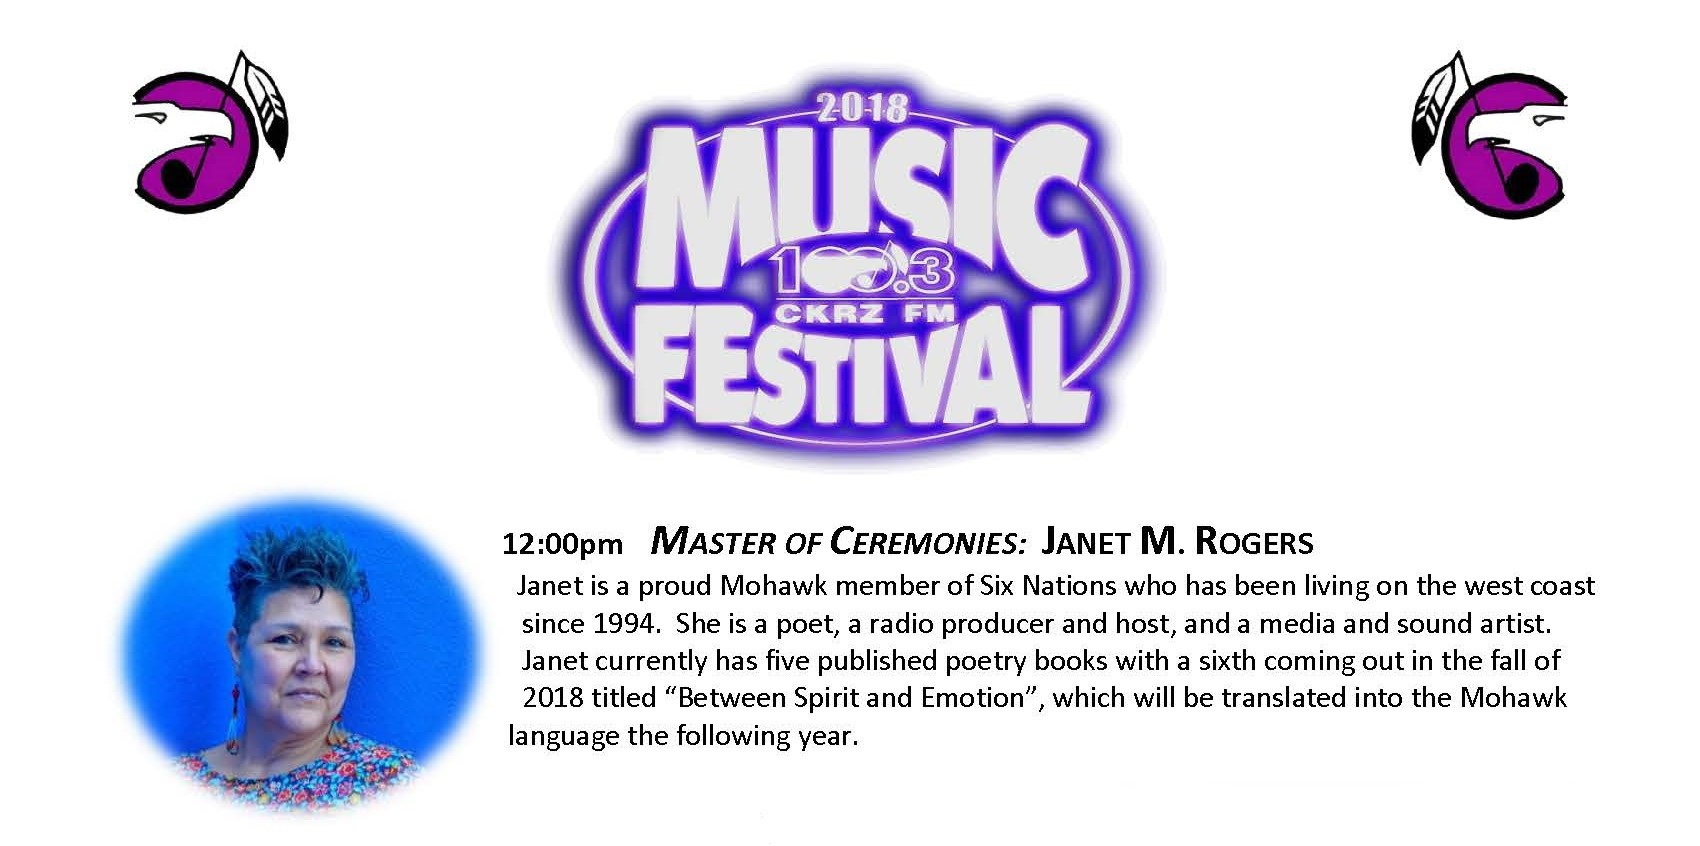 1. Music Fest Lineup - Janet